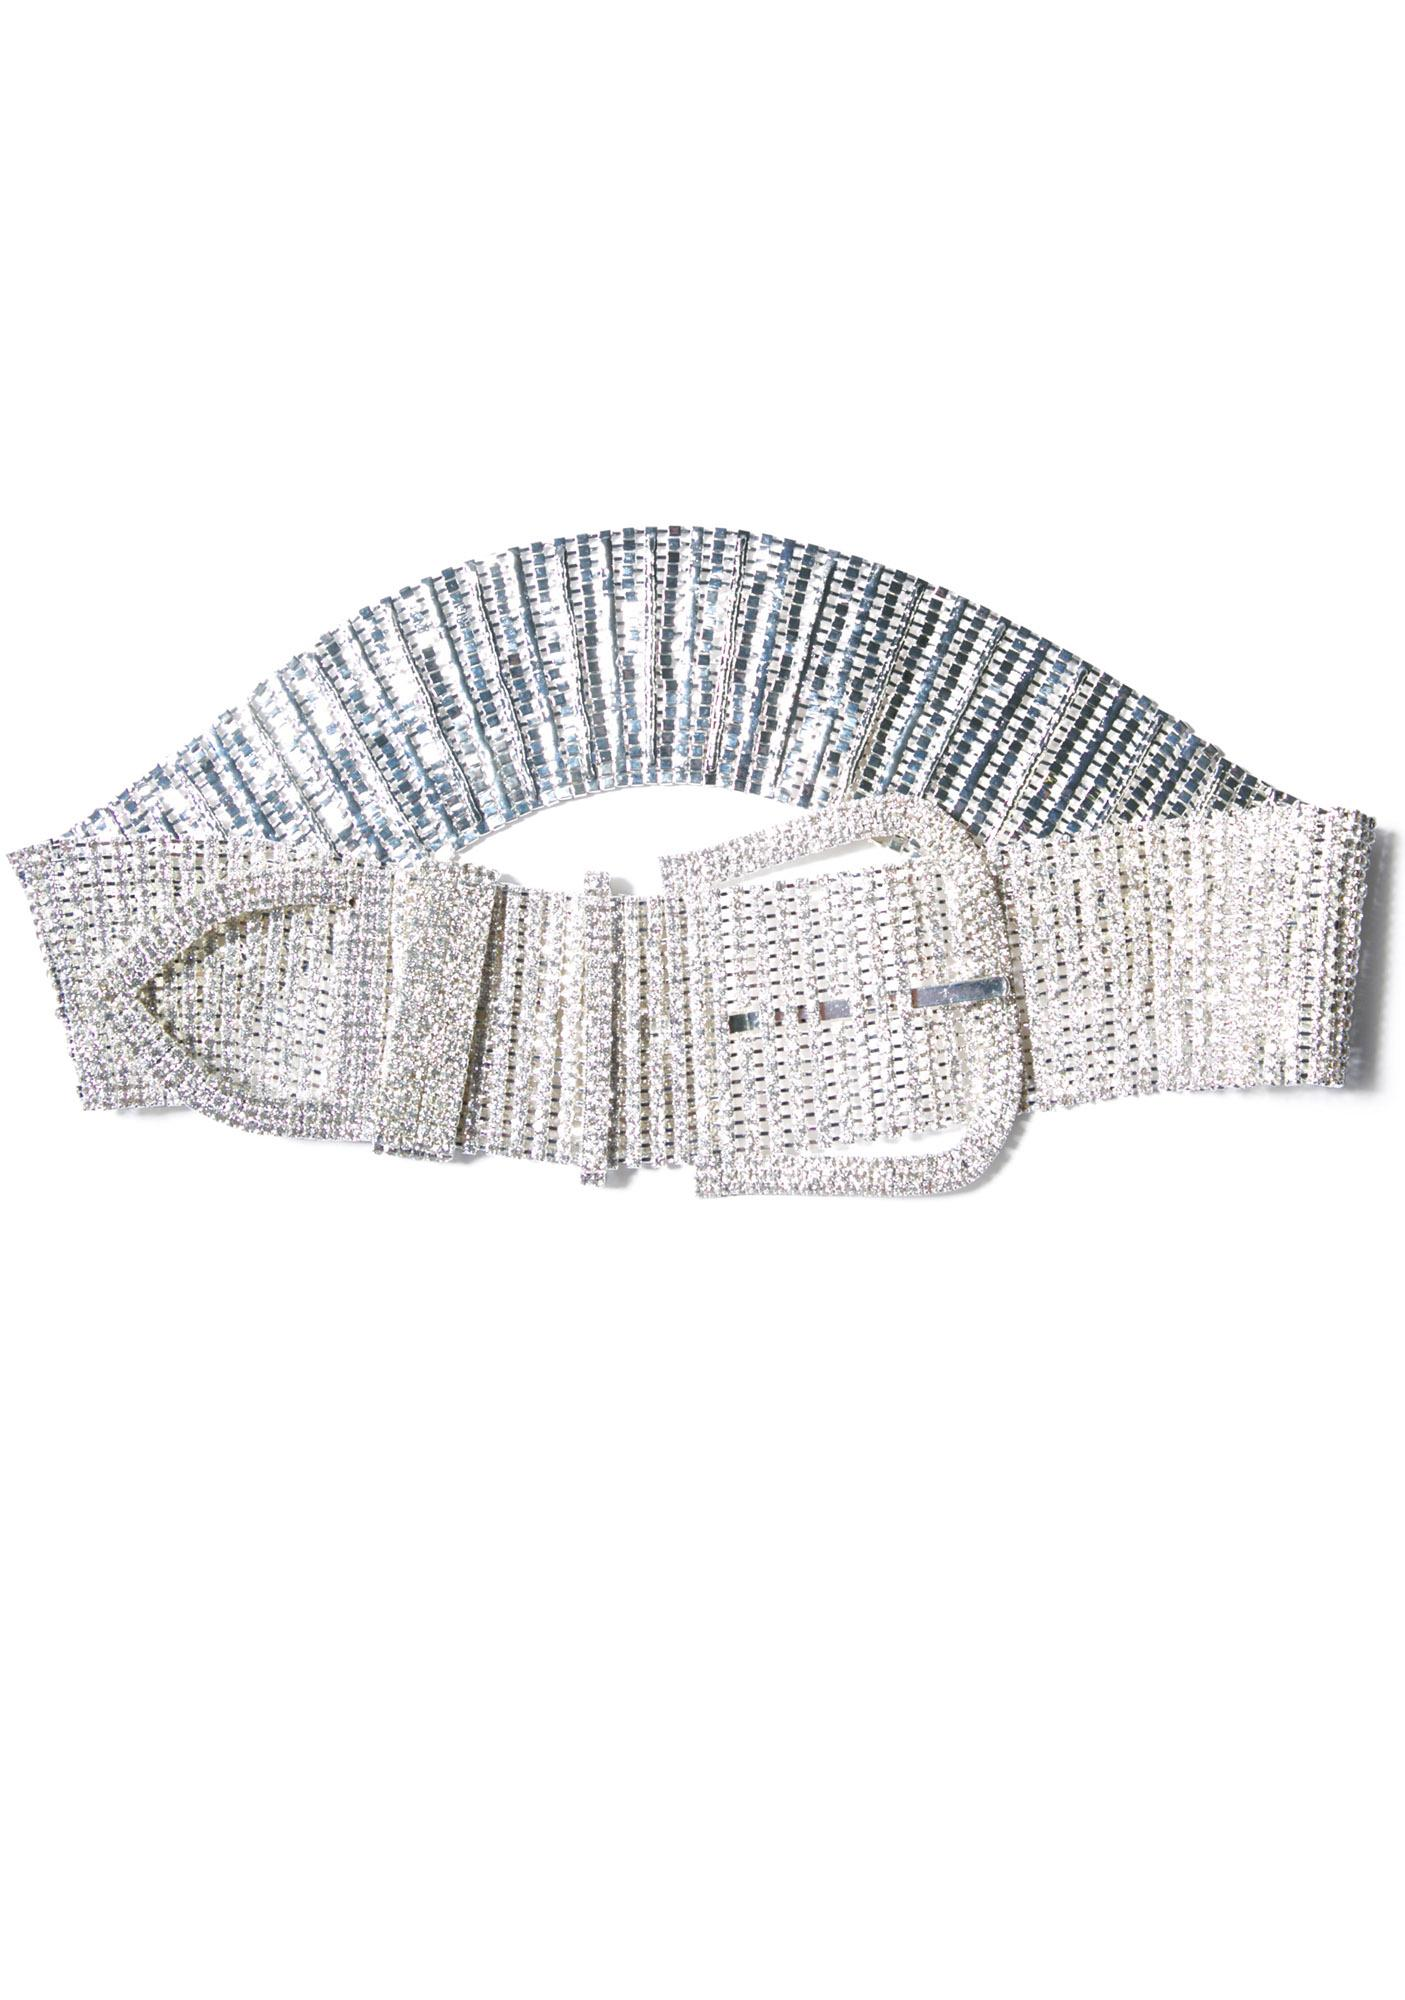 Showgurl Rhinestone Belt w/ Buckle